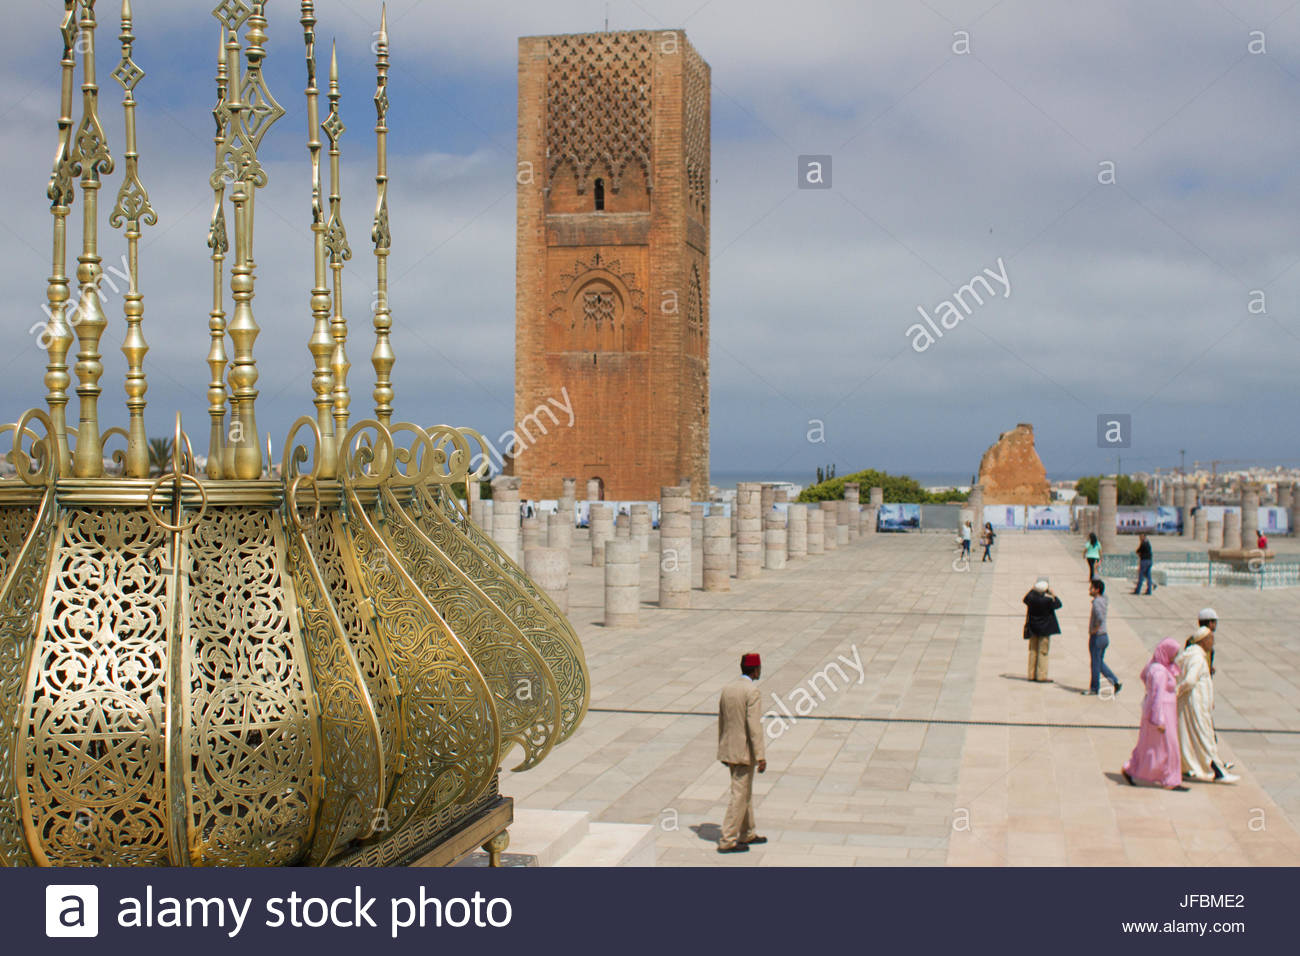 Visitors in the plaza at the Mausoleum of King Muhammad V. - Stock Image